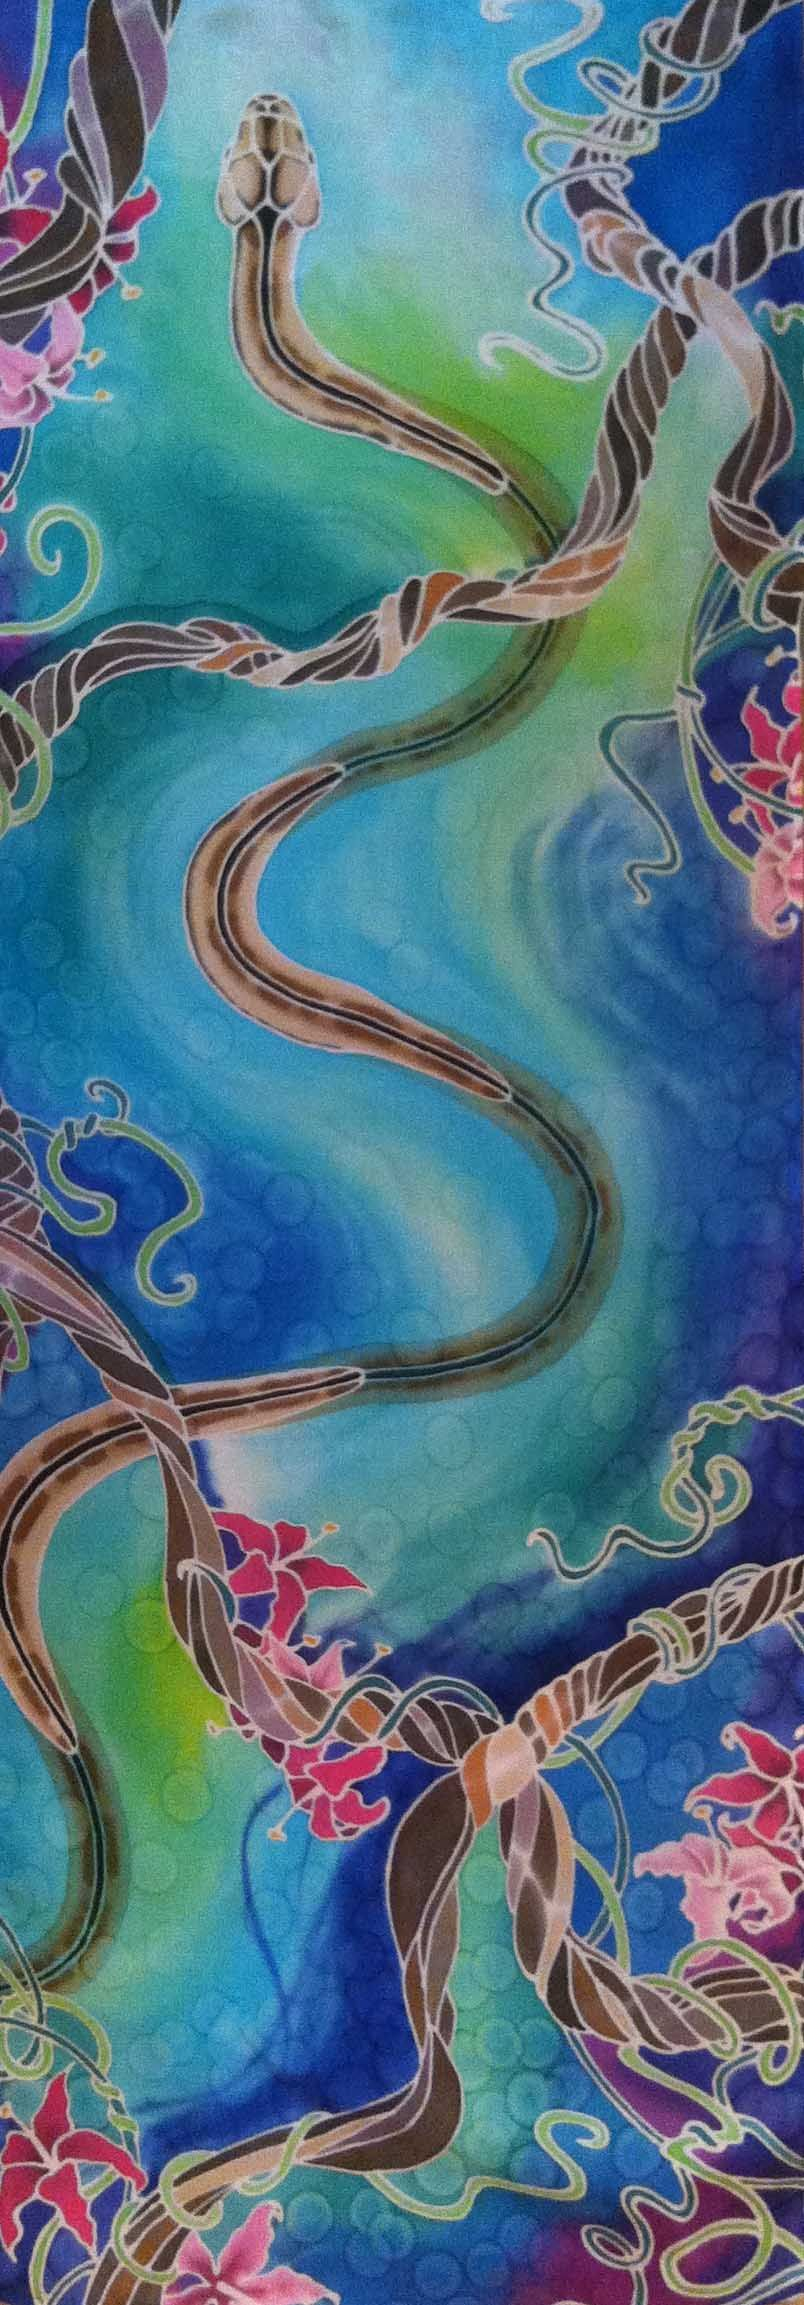 """Water Snake"" silk painting by Pamela Glose, 43 x 15 inches.  See her blog at www.MySilkArt.com."